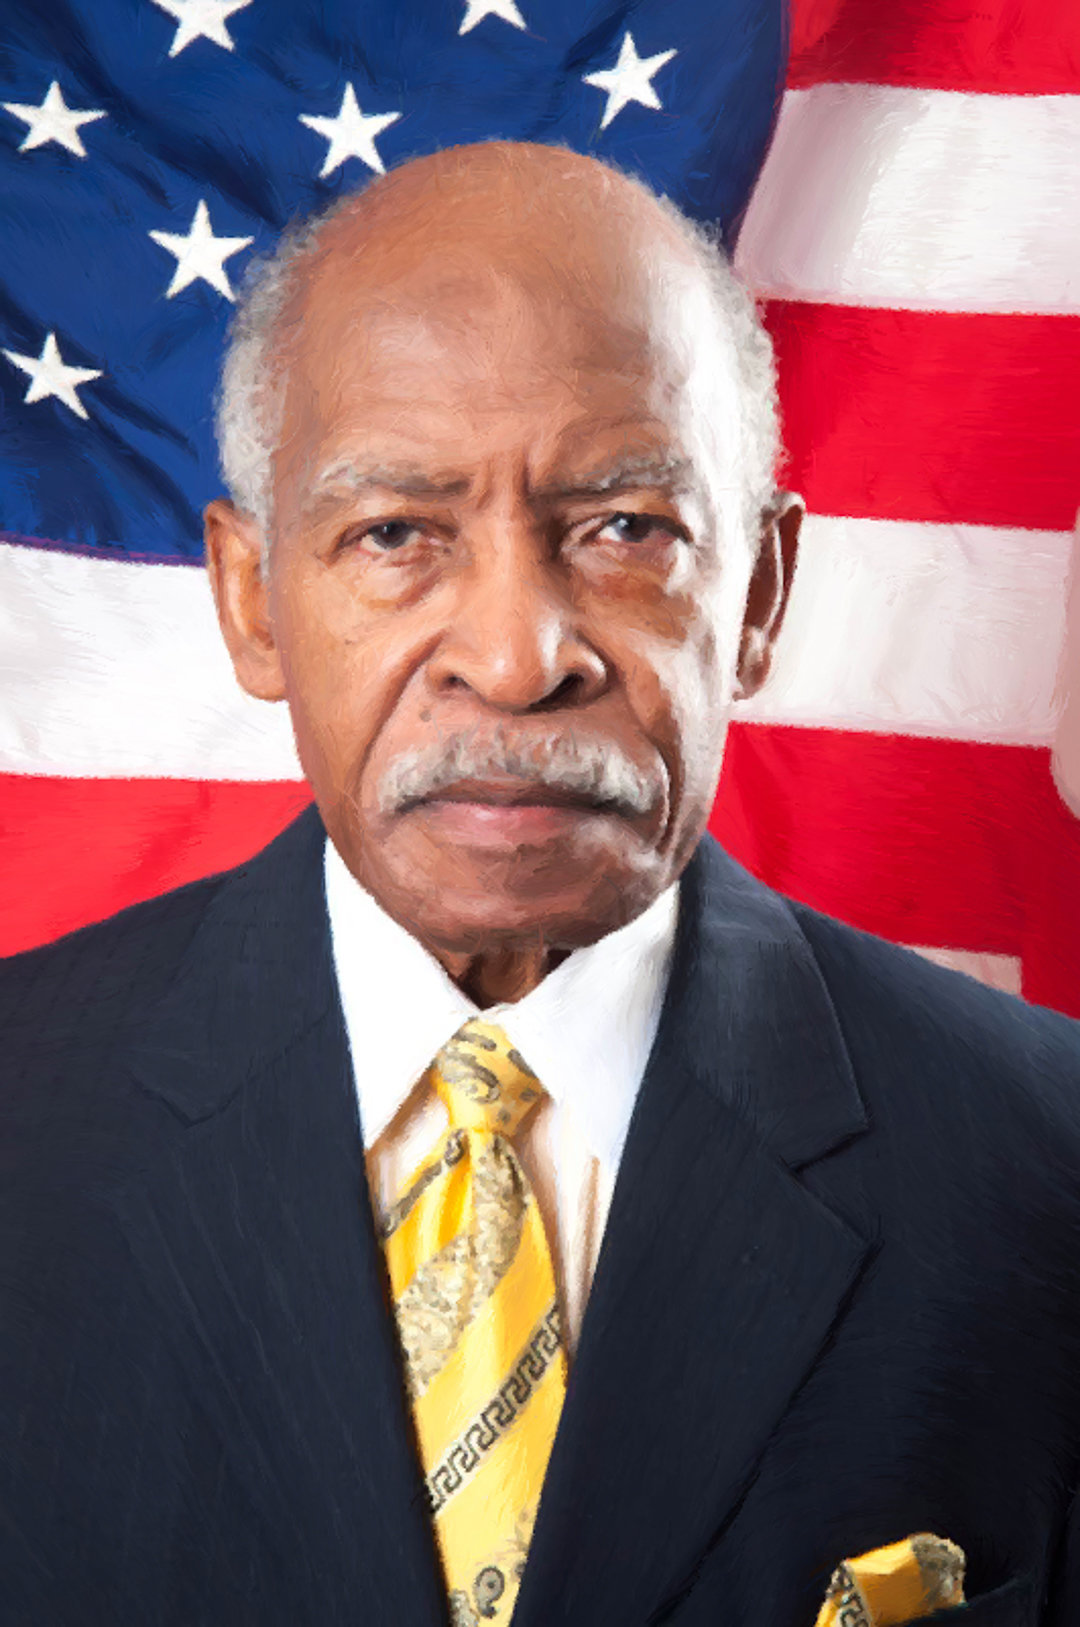 Political Business Headshot with American Flag Backdrop